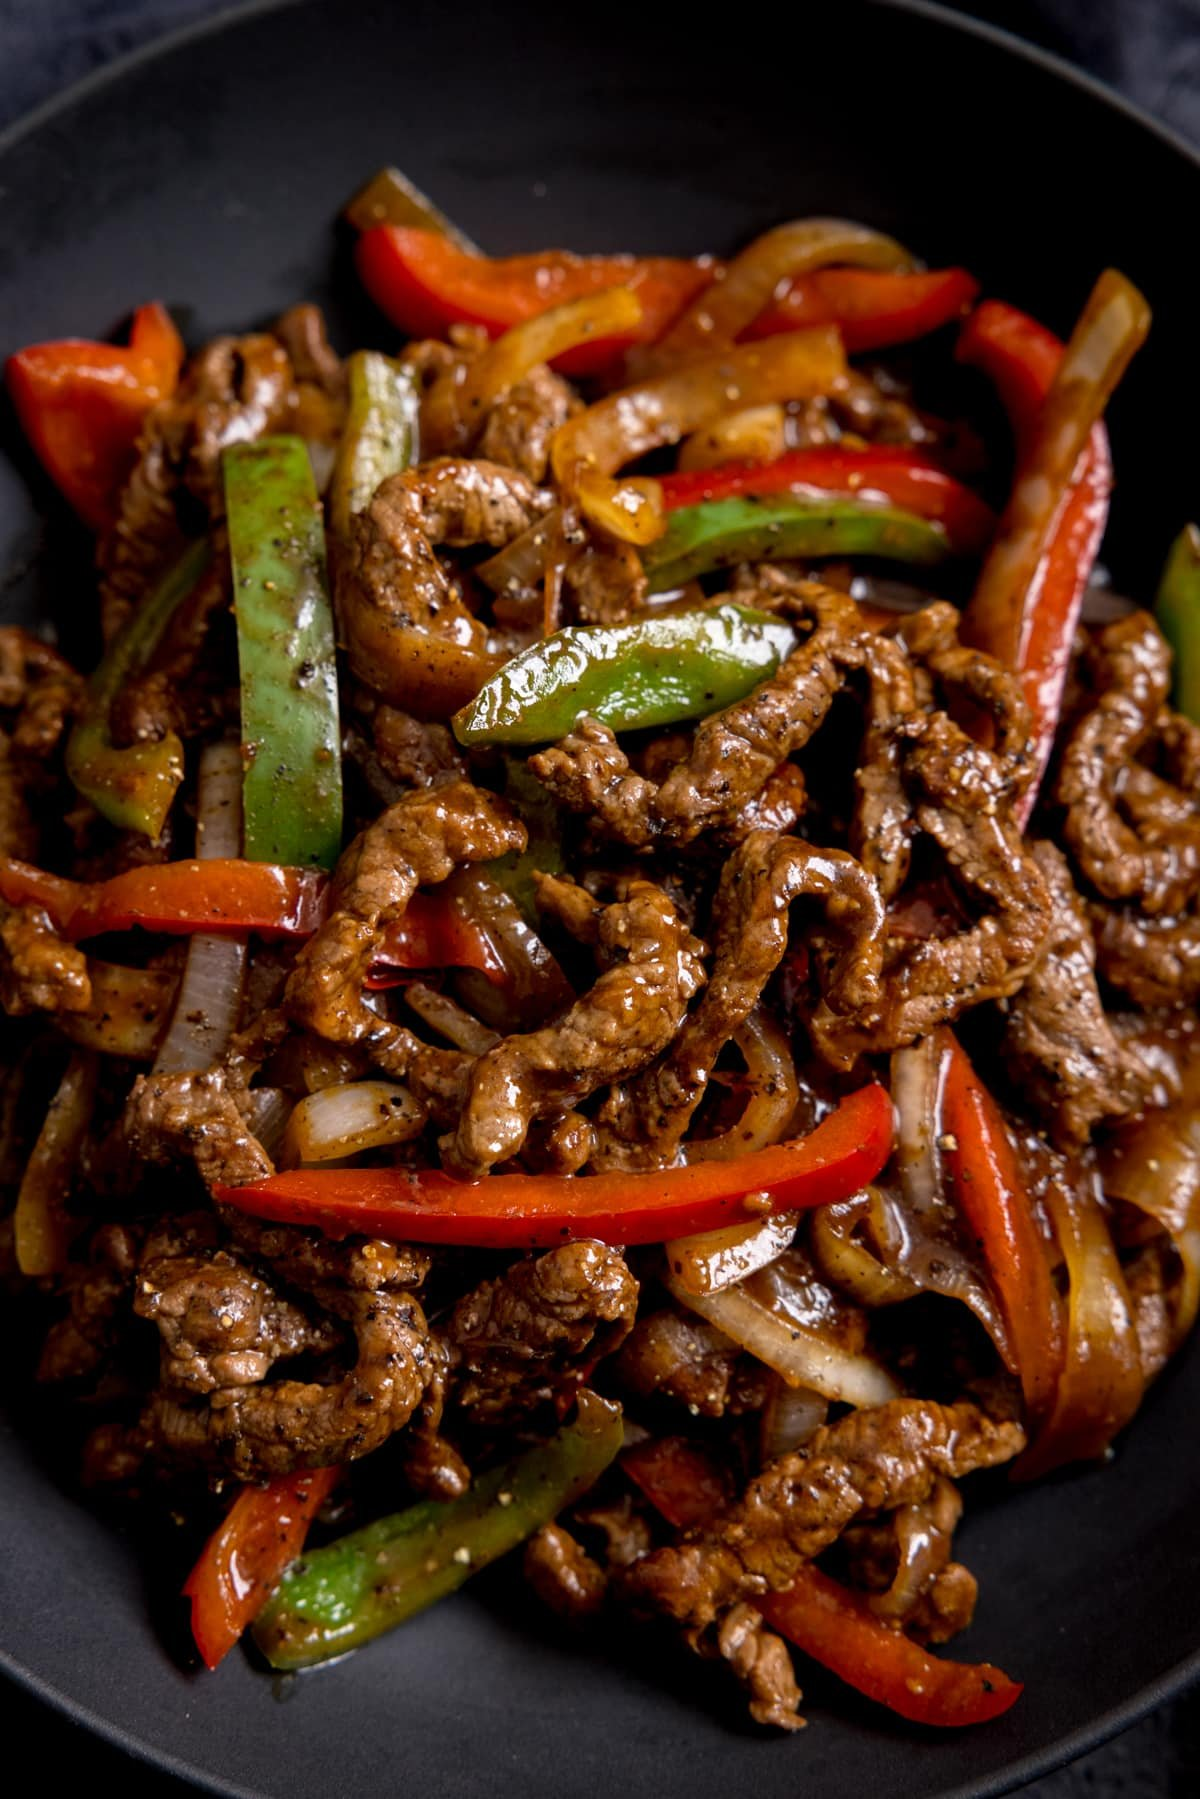 Close up of black pepper beef stir fry with red and green peppers in a bowl